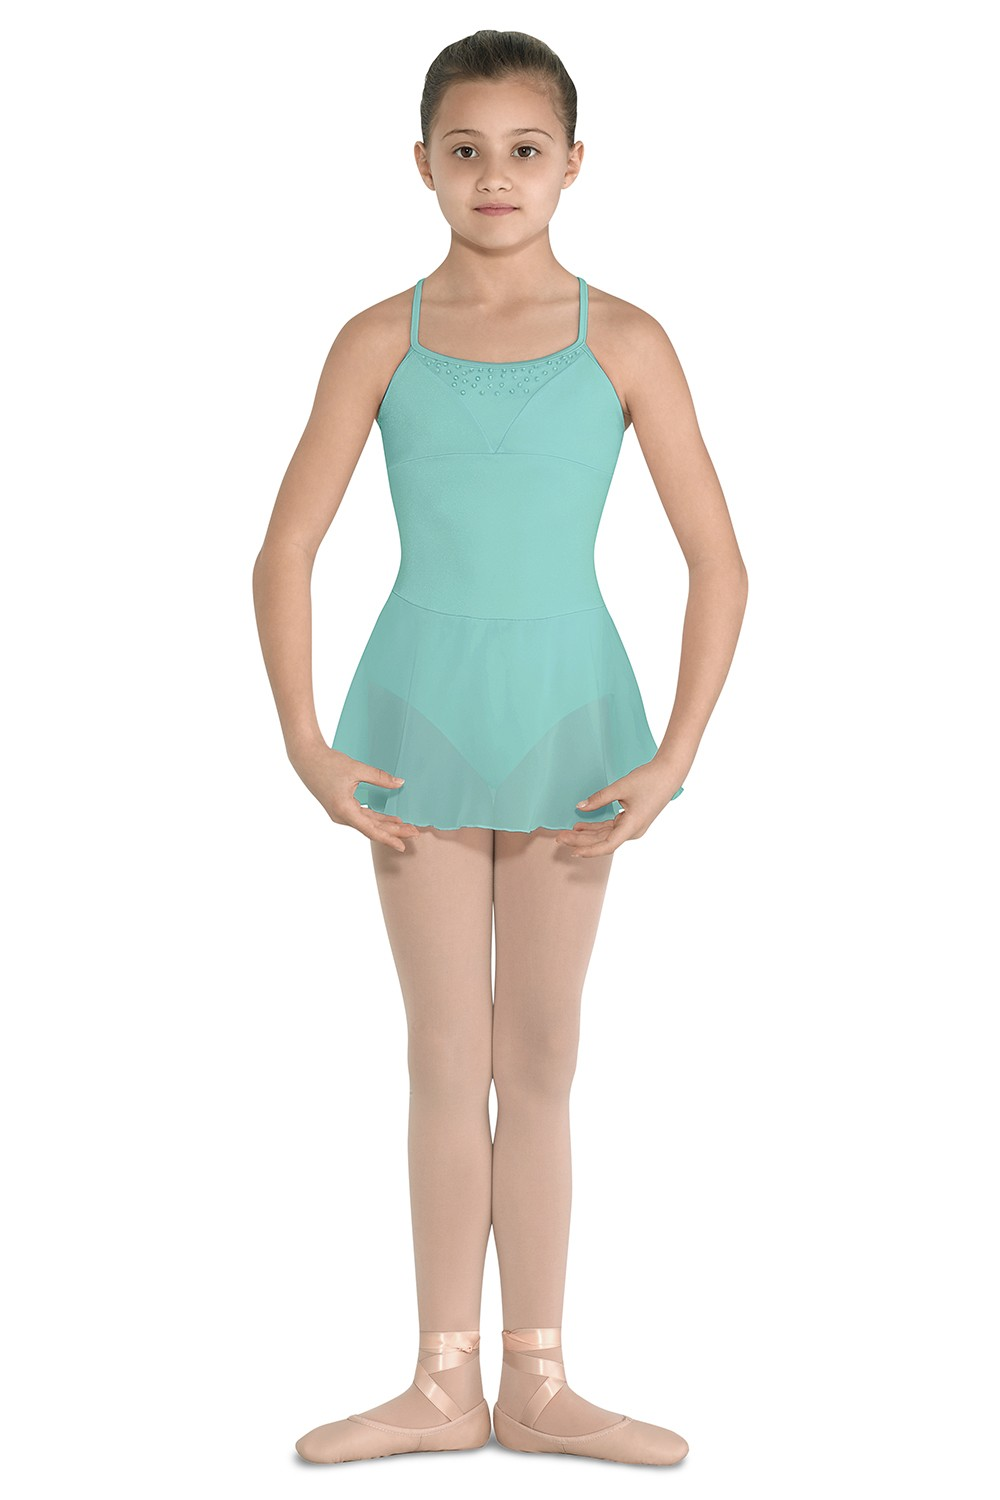 Harper Children's Dance Leotards